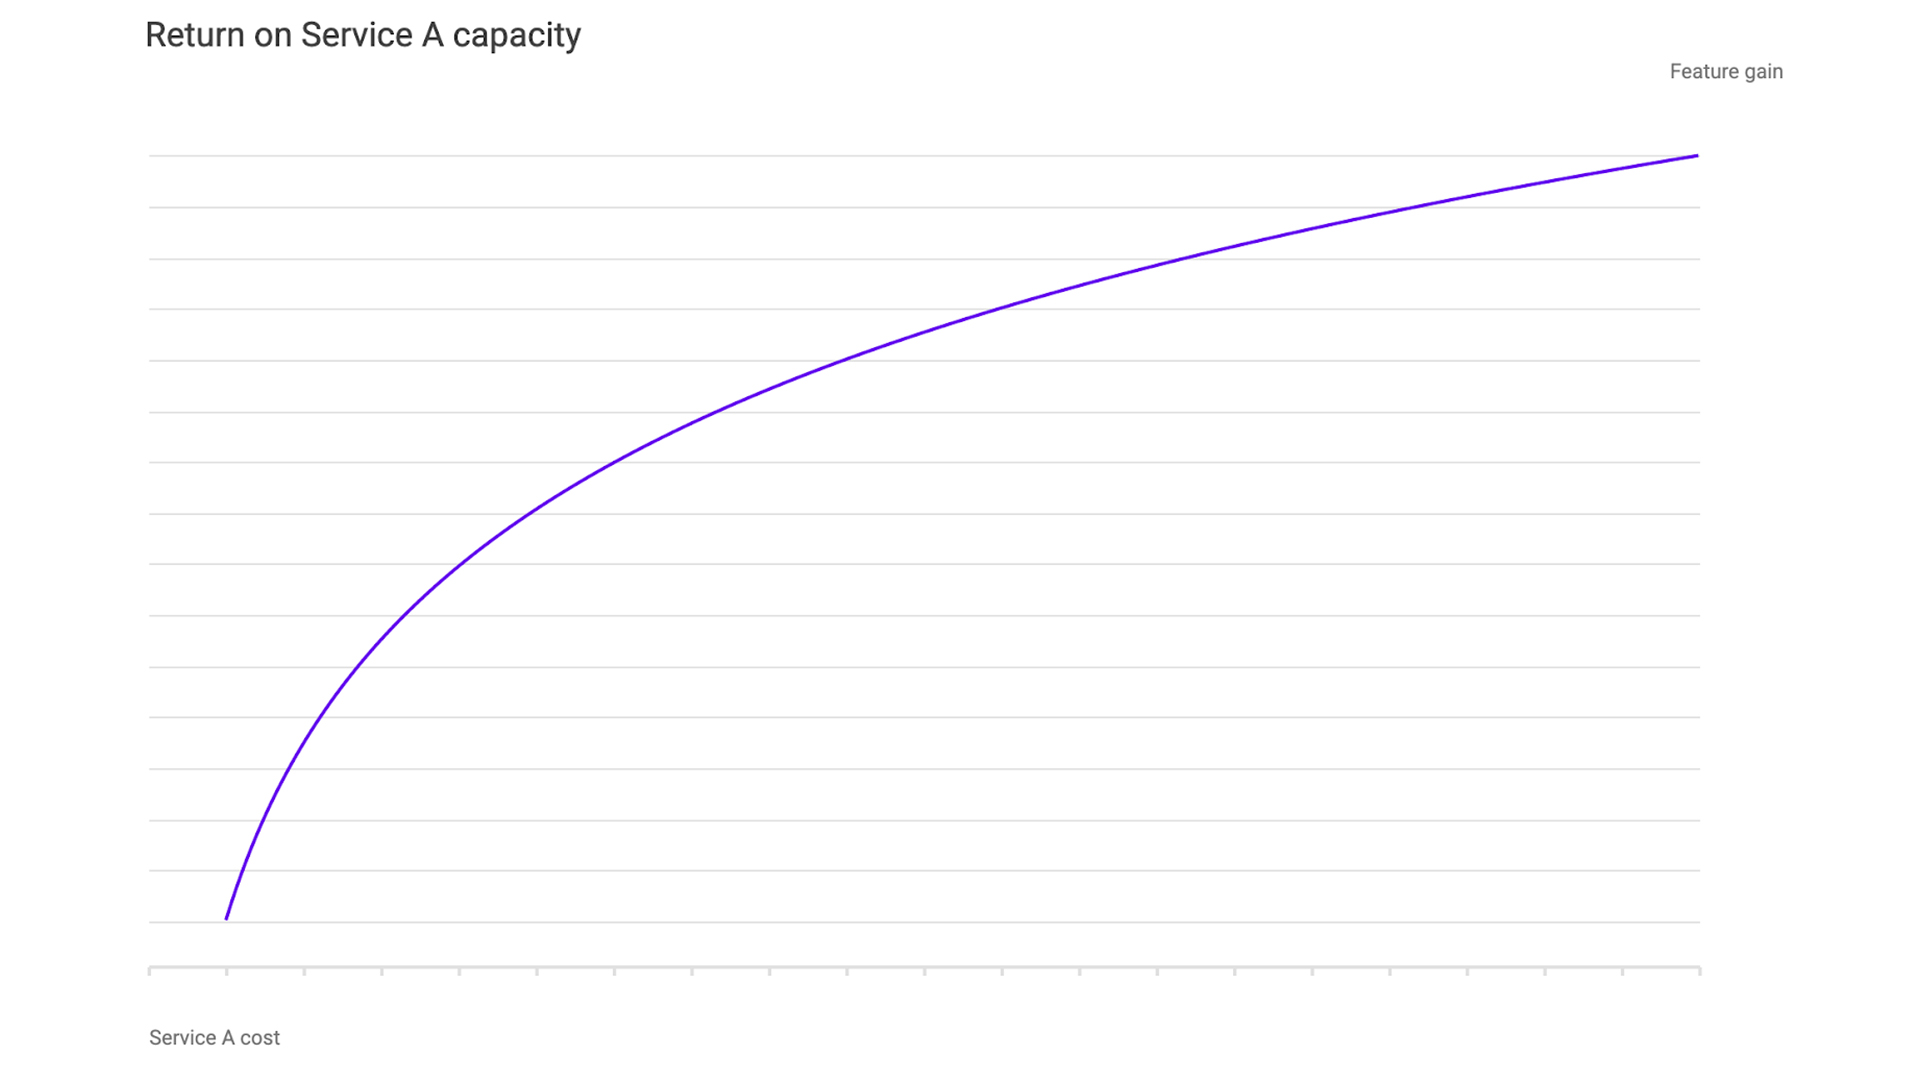 chart showing return on service A capacity